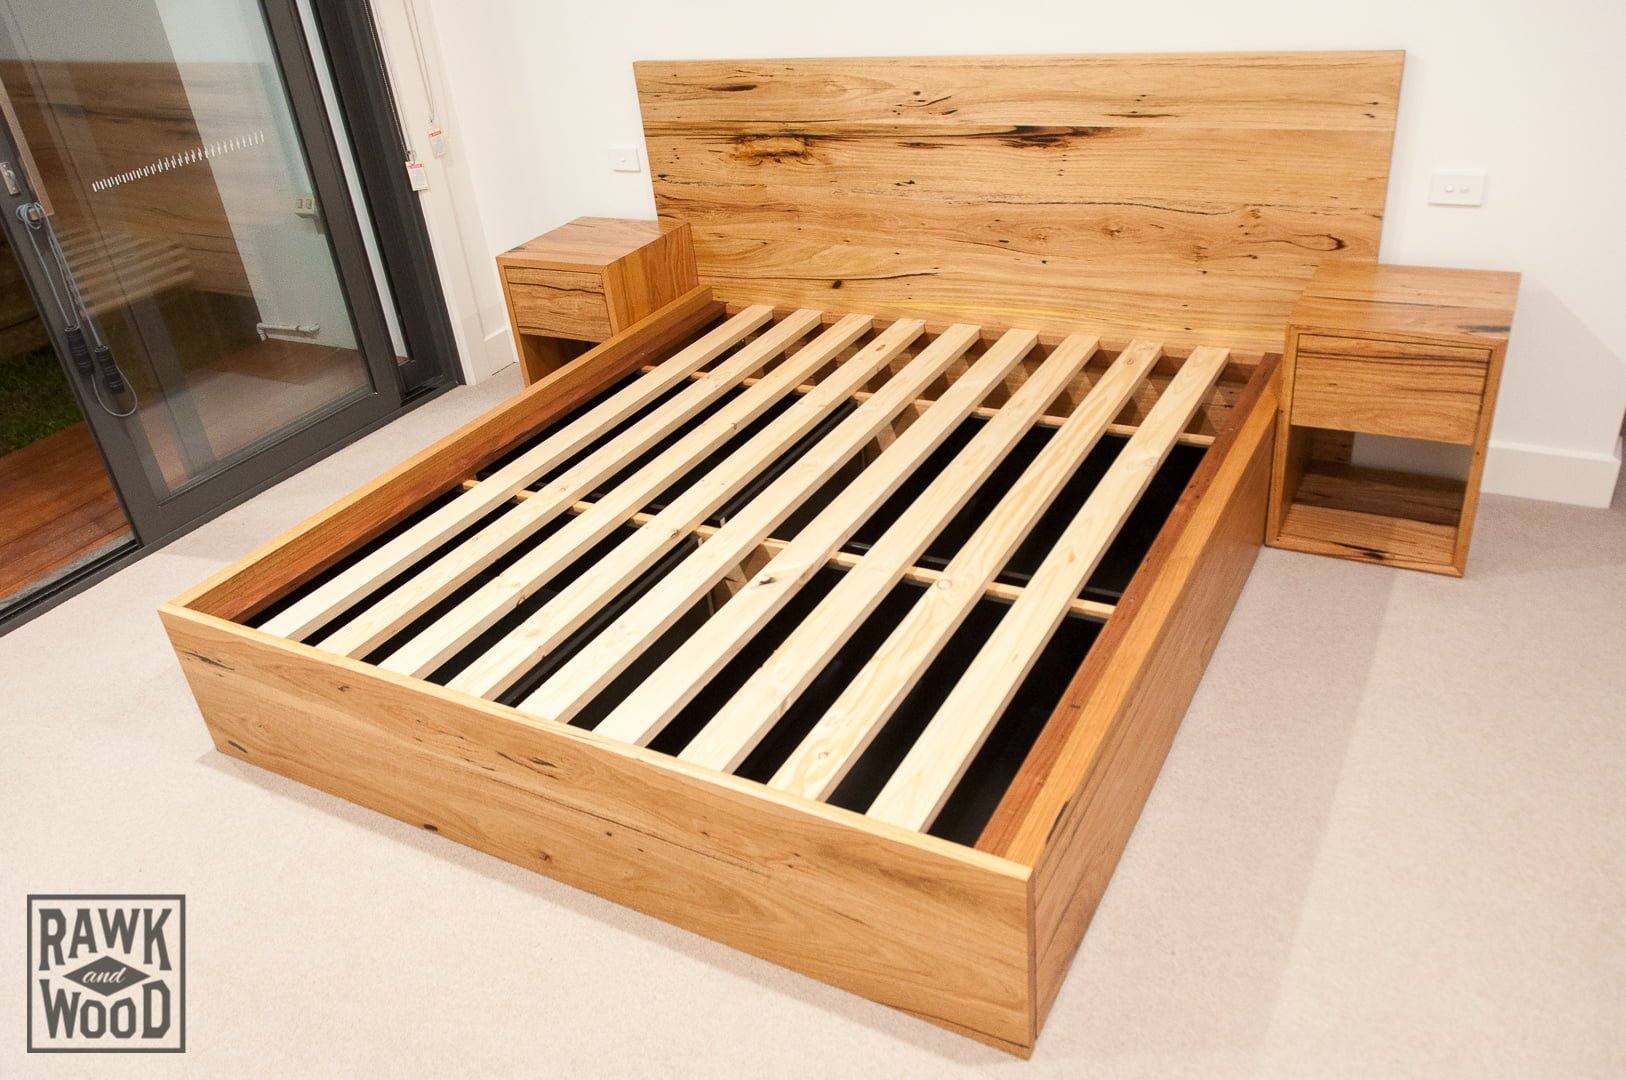 Recycled-Timber-Storage-Bed-02, made in Melbourne by Rawk and Wood